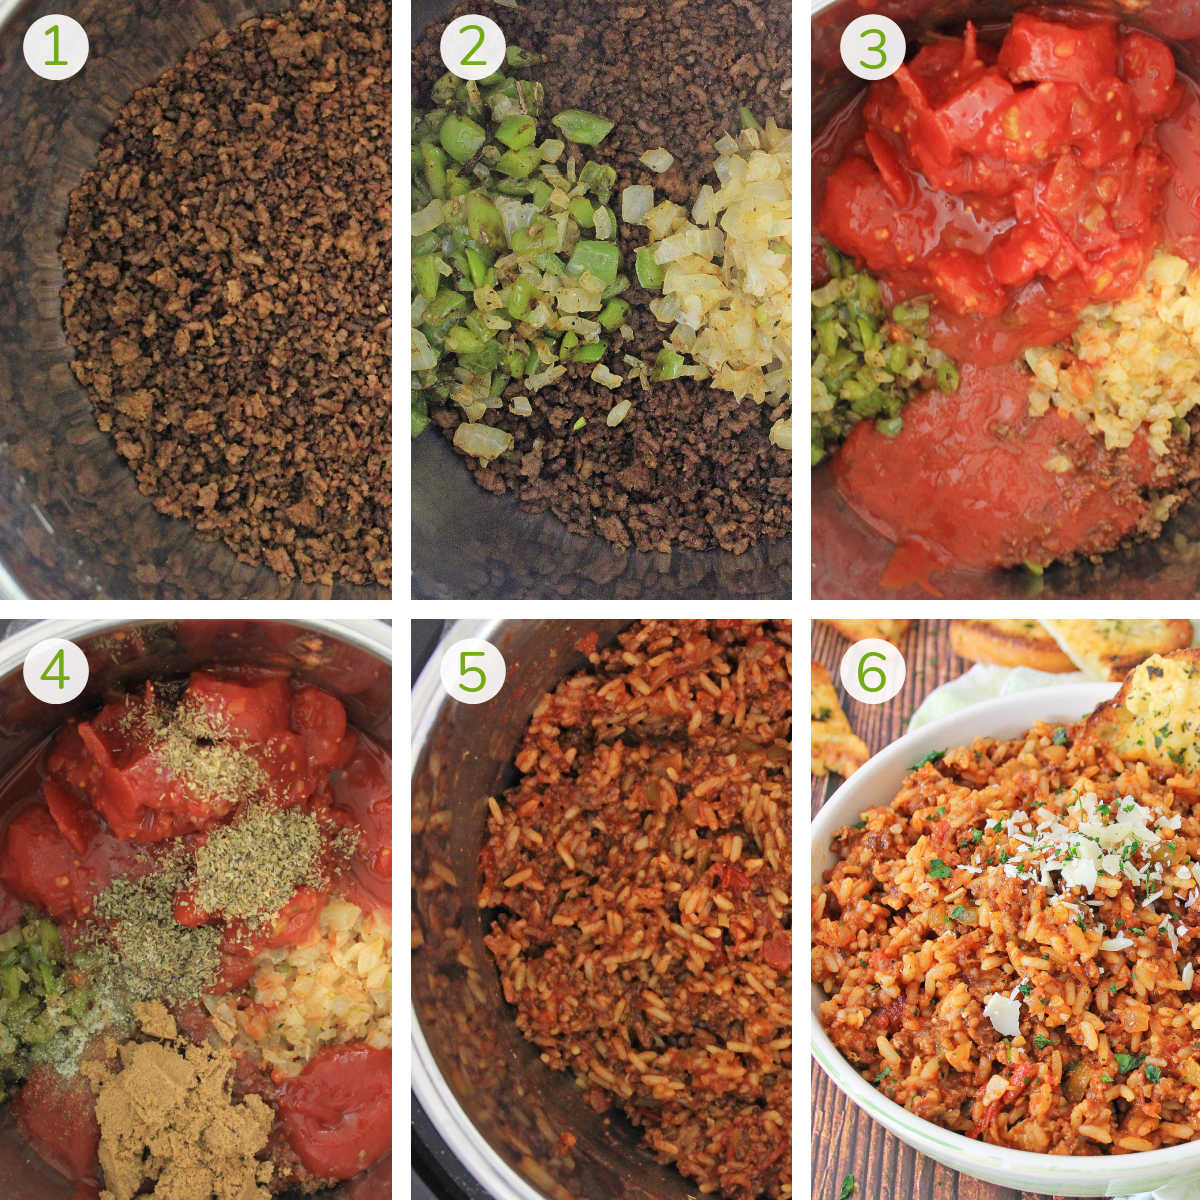 six process shots showing adding the chuck, onions, tomatoes and seasoning to the Instant Pot.